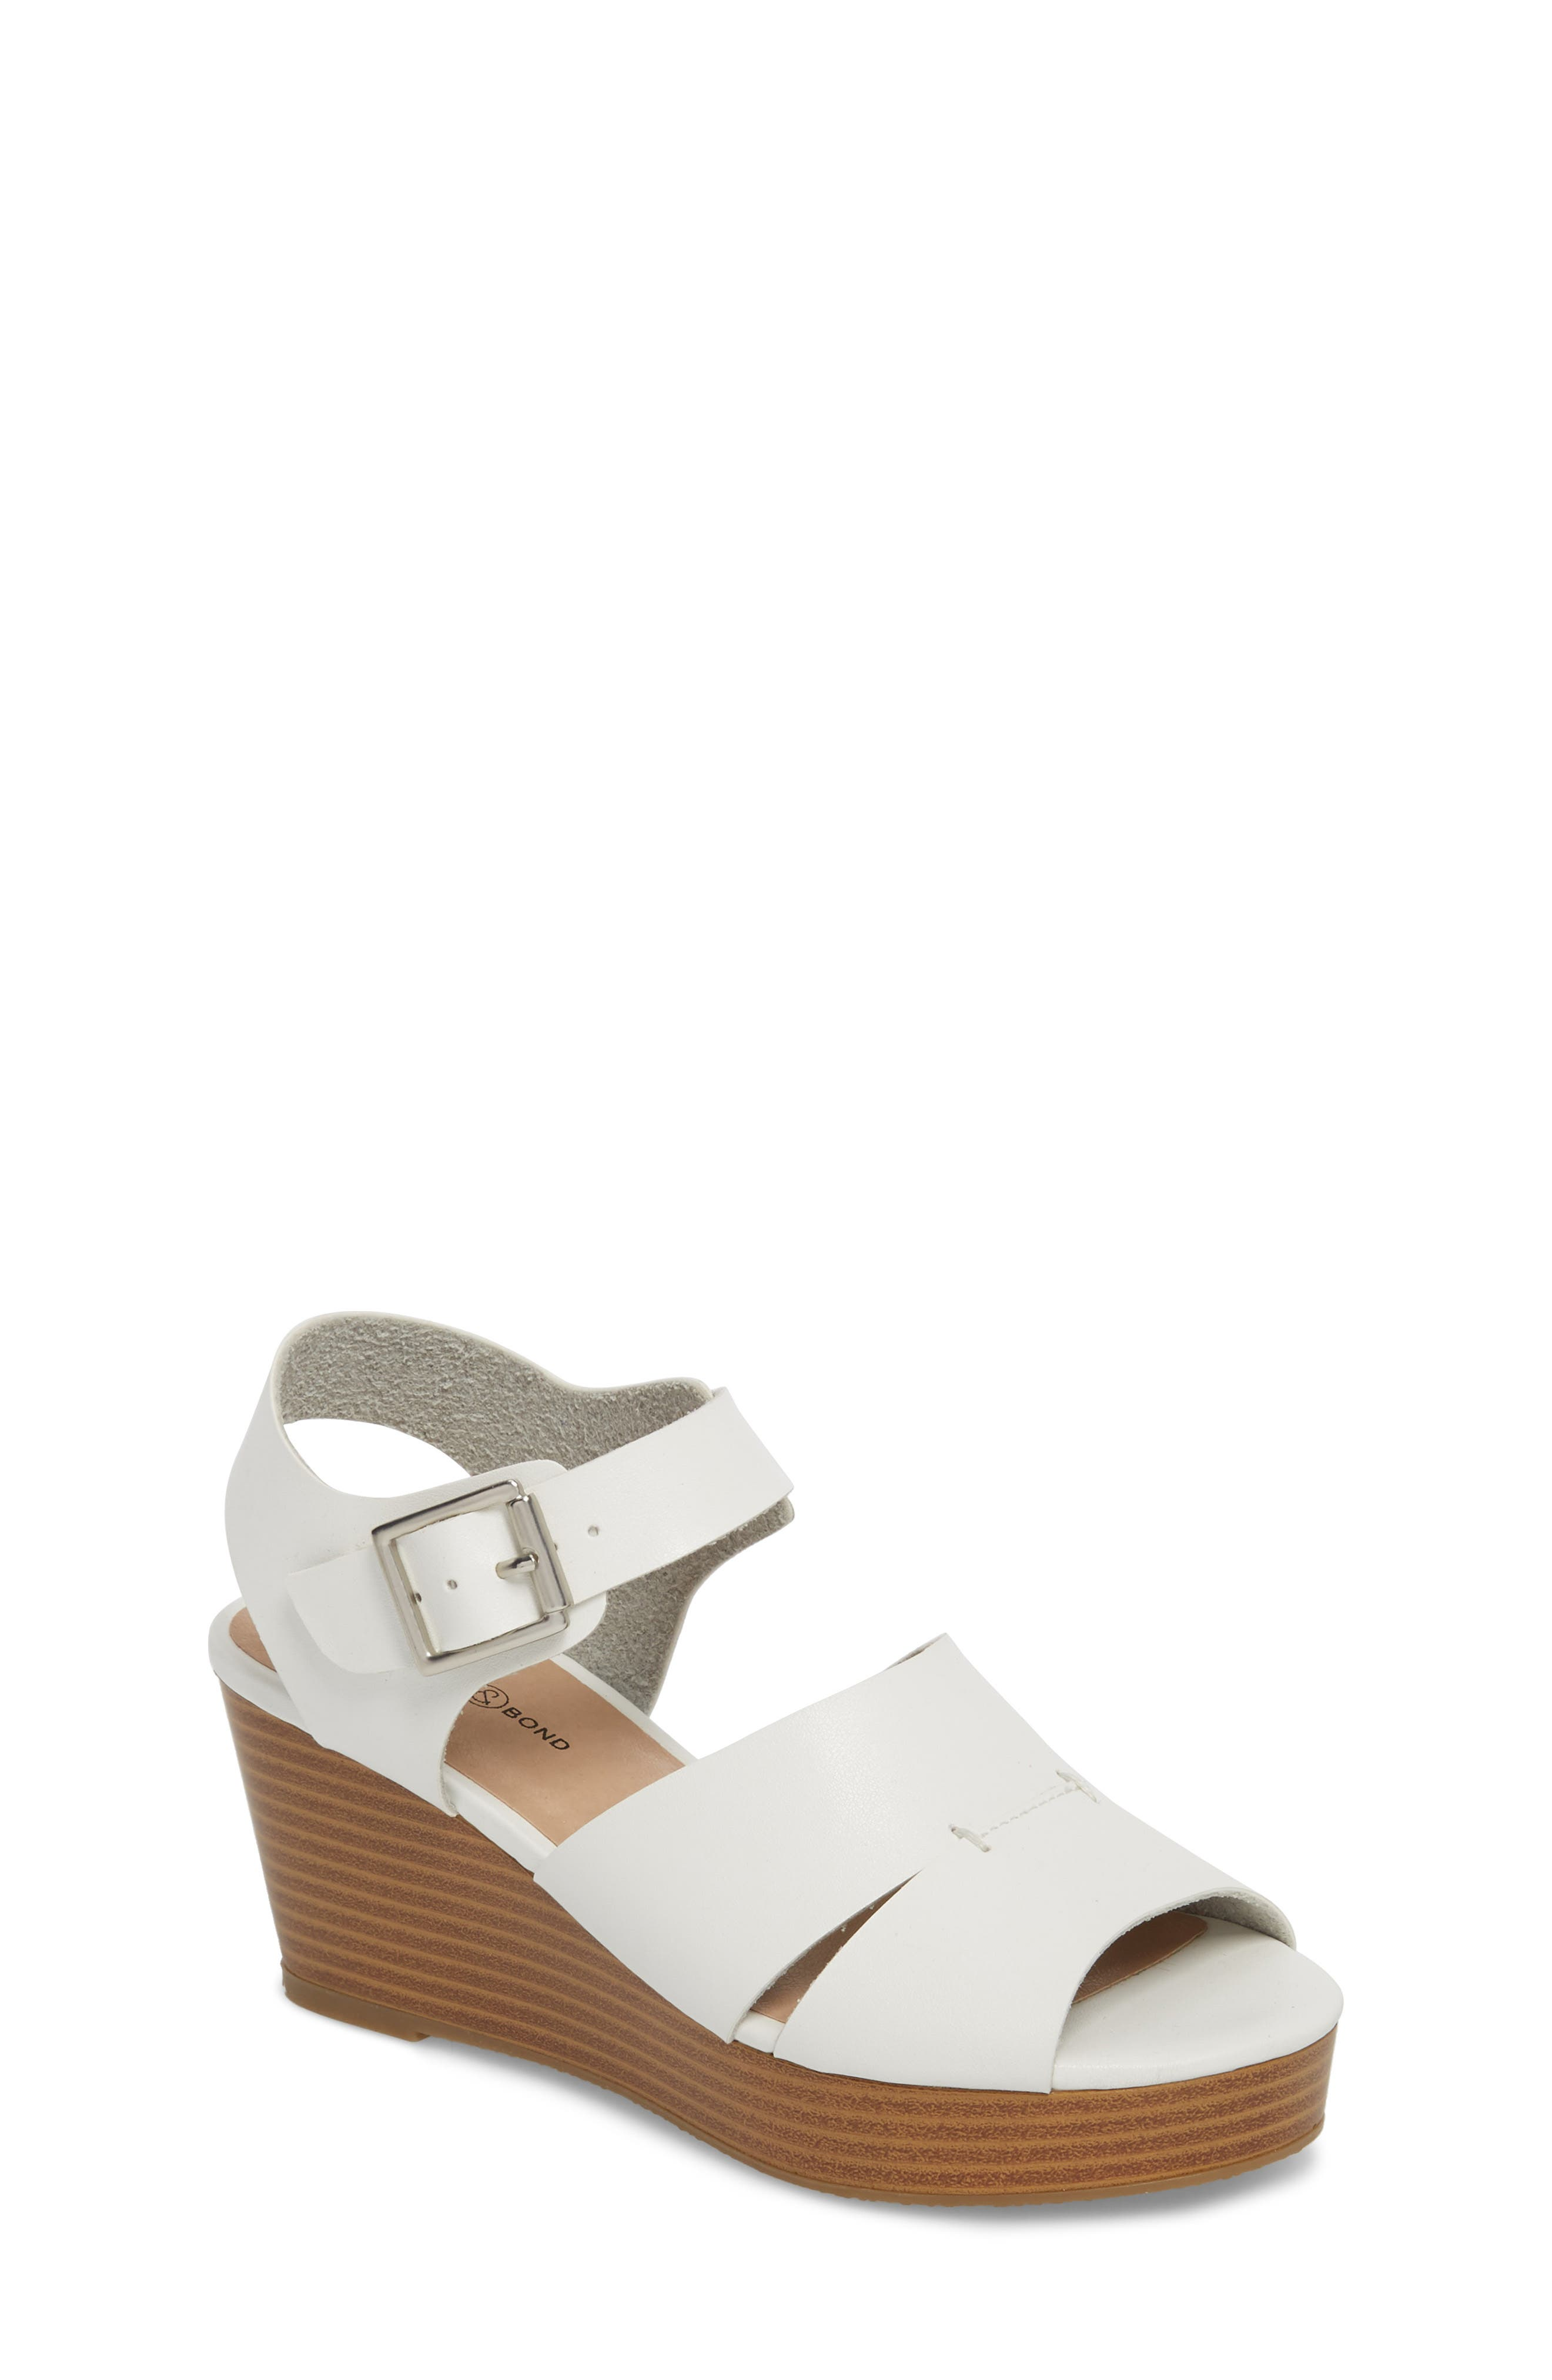 Hunter Platform Wedge Sandal,                         Main,                         color, White Faux Leather